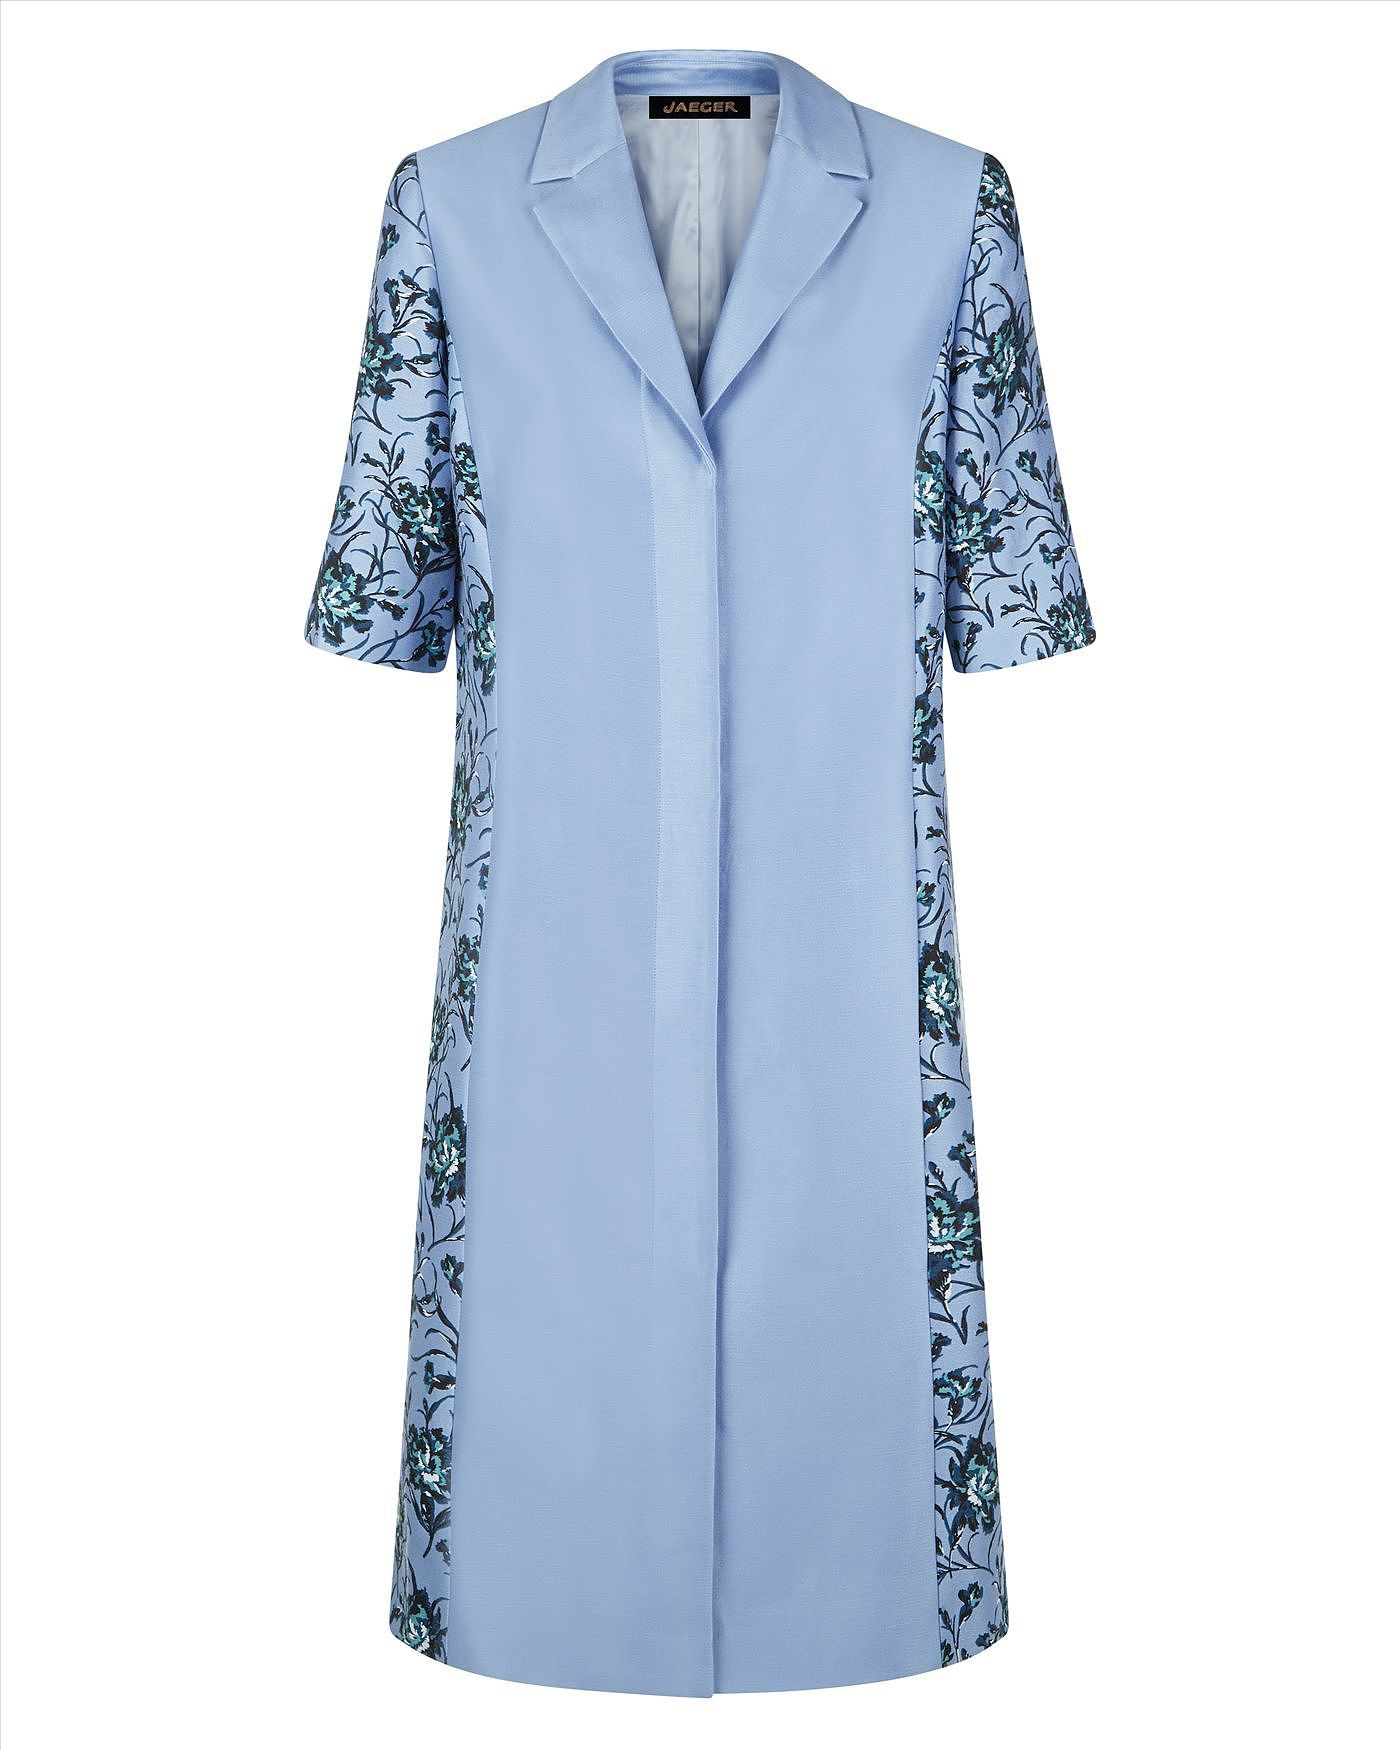 Womens powder blue coat from Jaeger - £67 at ClothingByColour.com